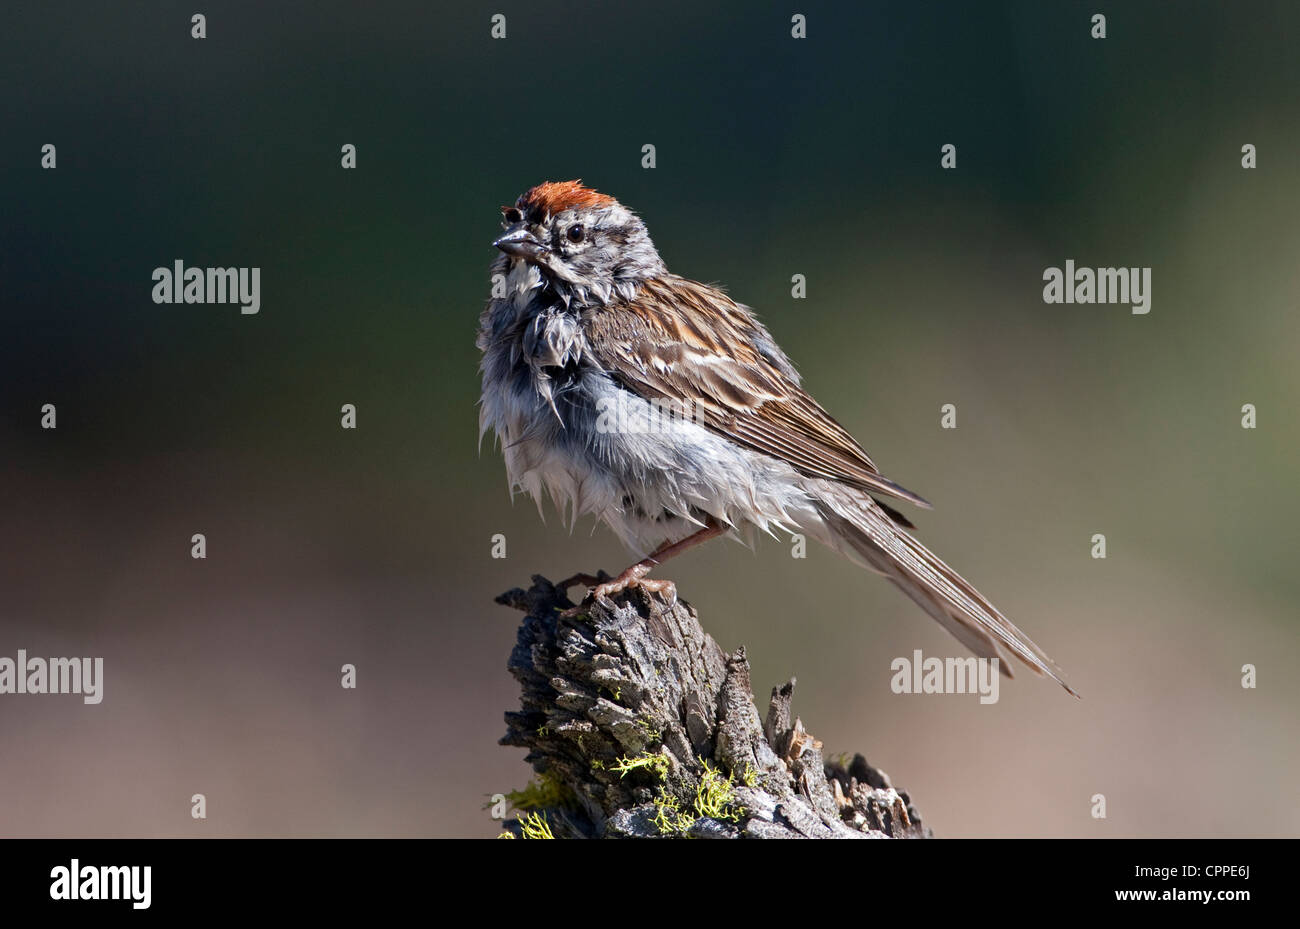 Chipping Sparrow (Spizella passerina) wet from bathing and perched on a stump at Cabin Lake, Oregon, USA in June. - Stock Image